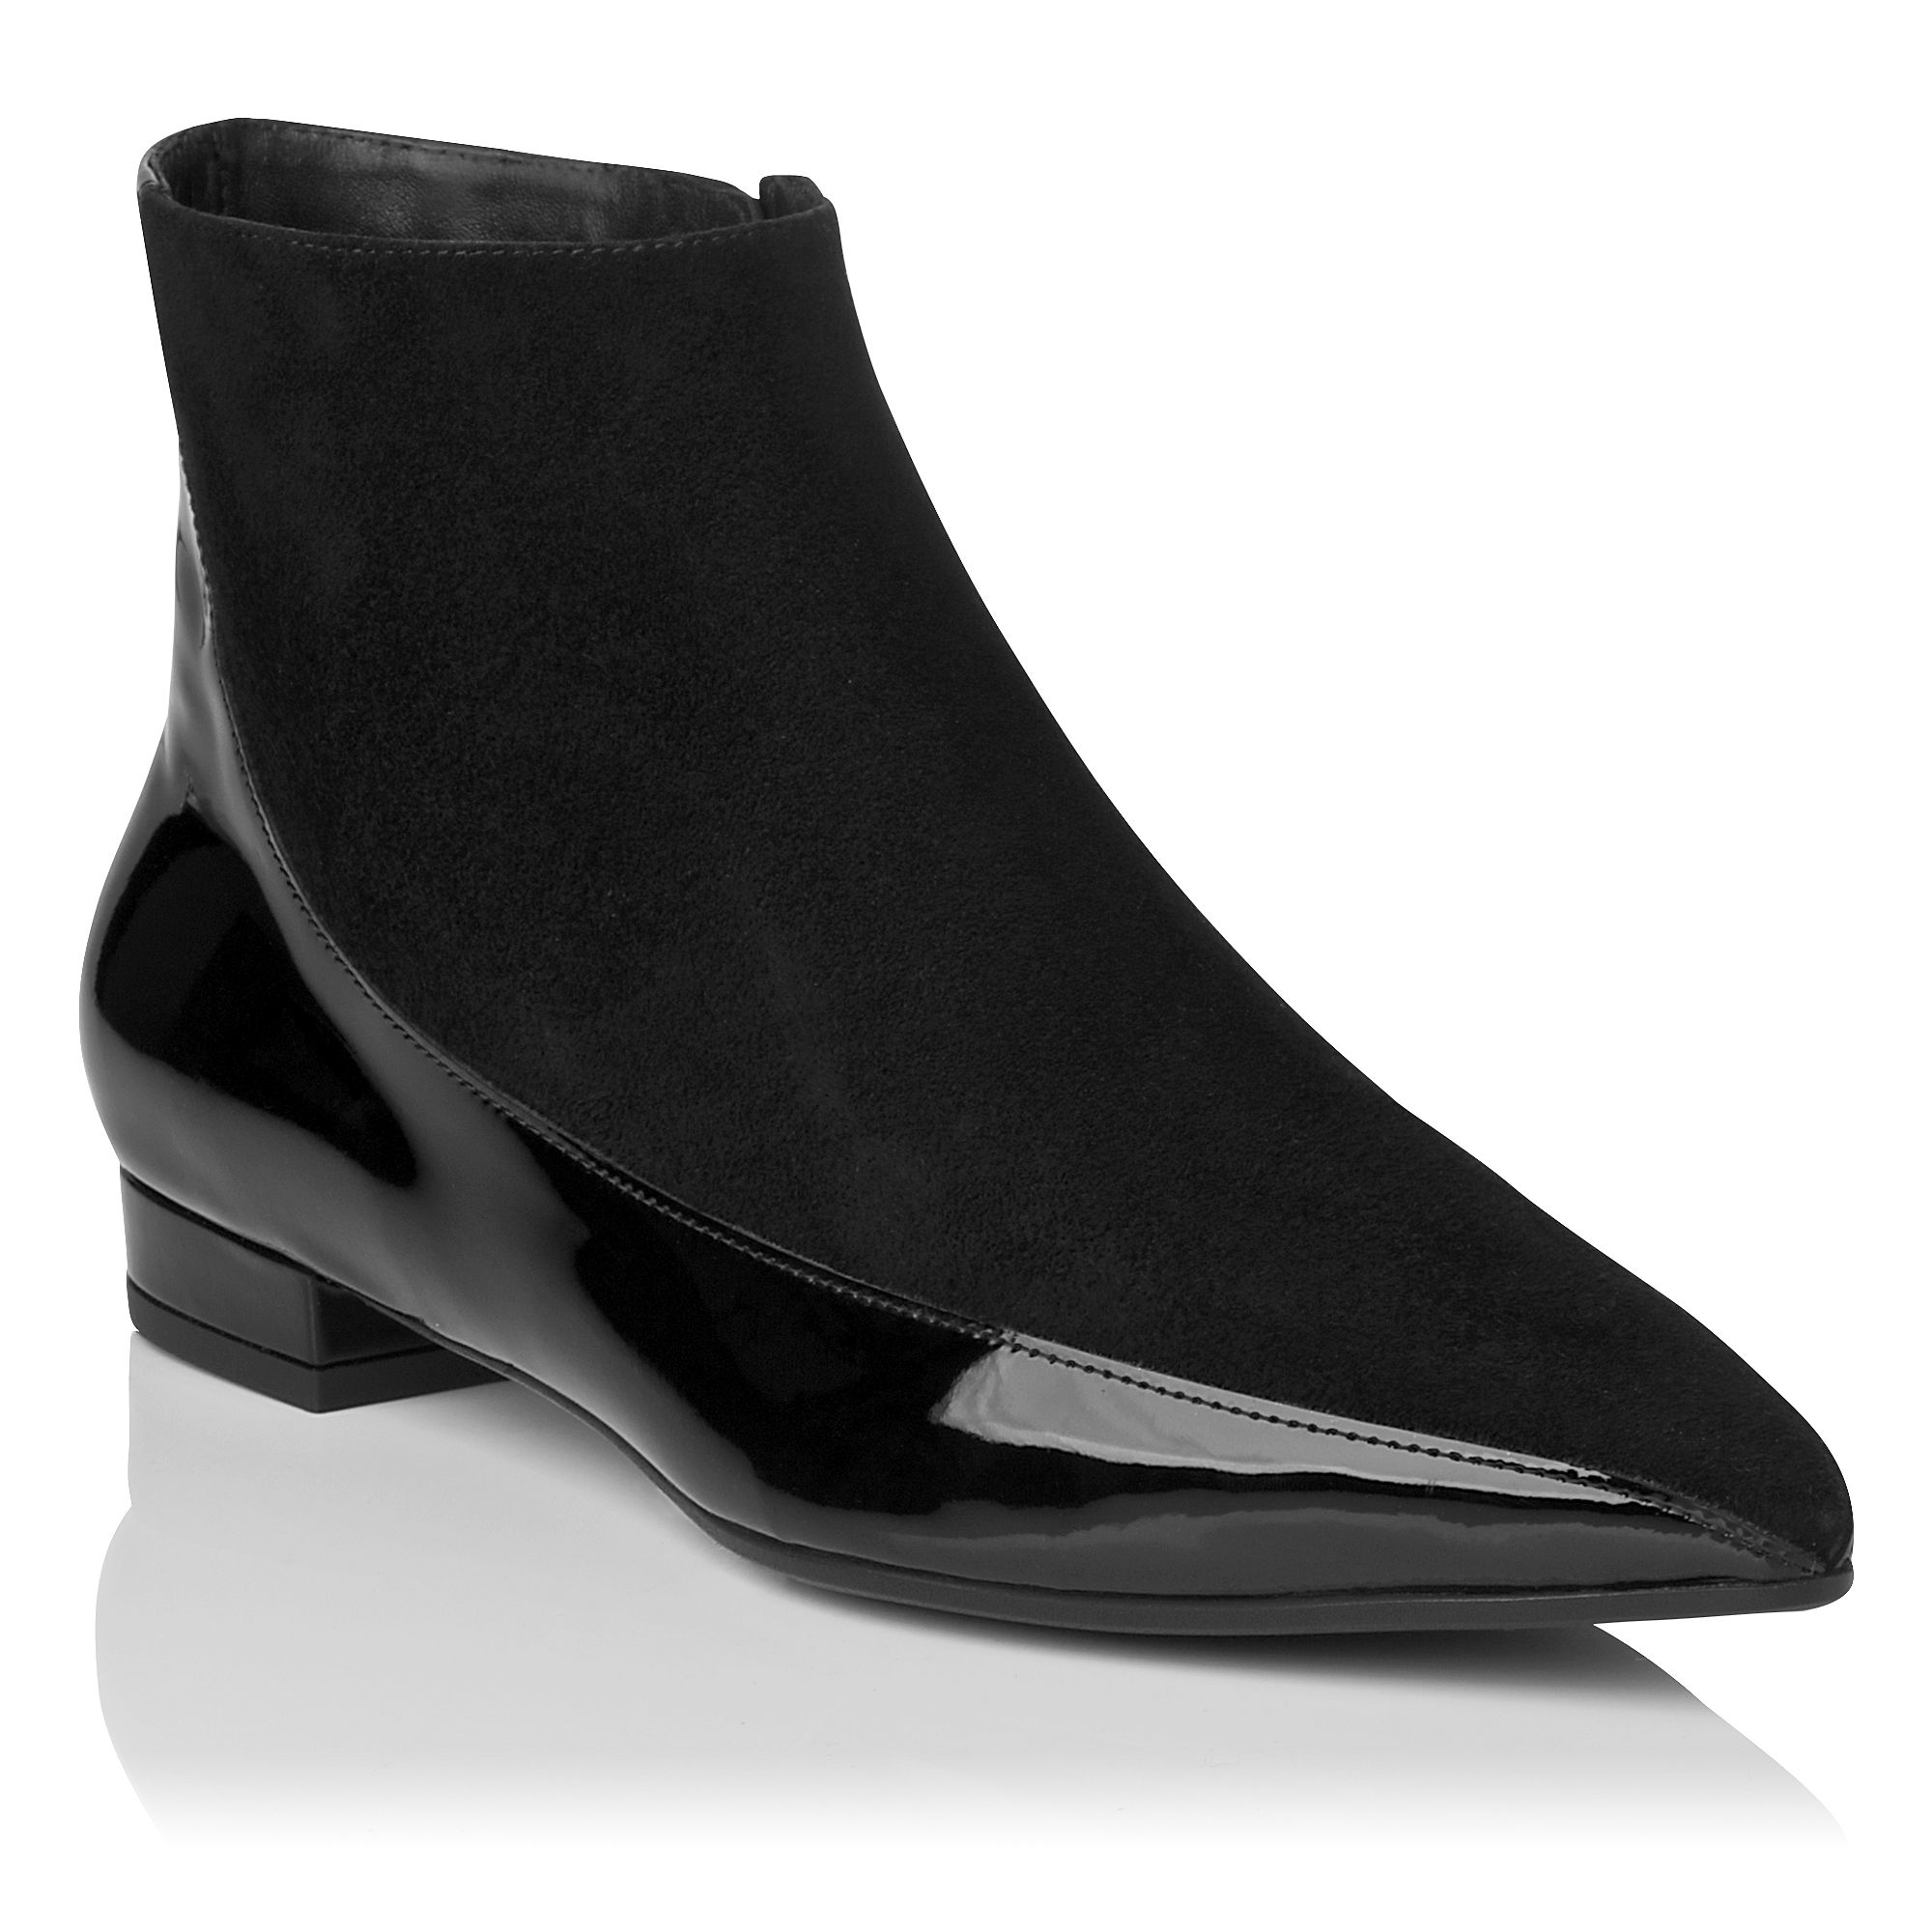 Alis pointed toe block heel flat boots